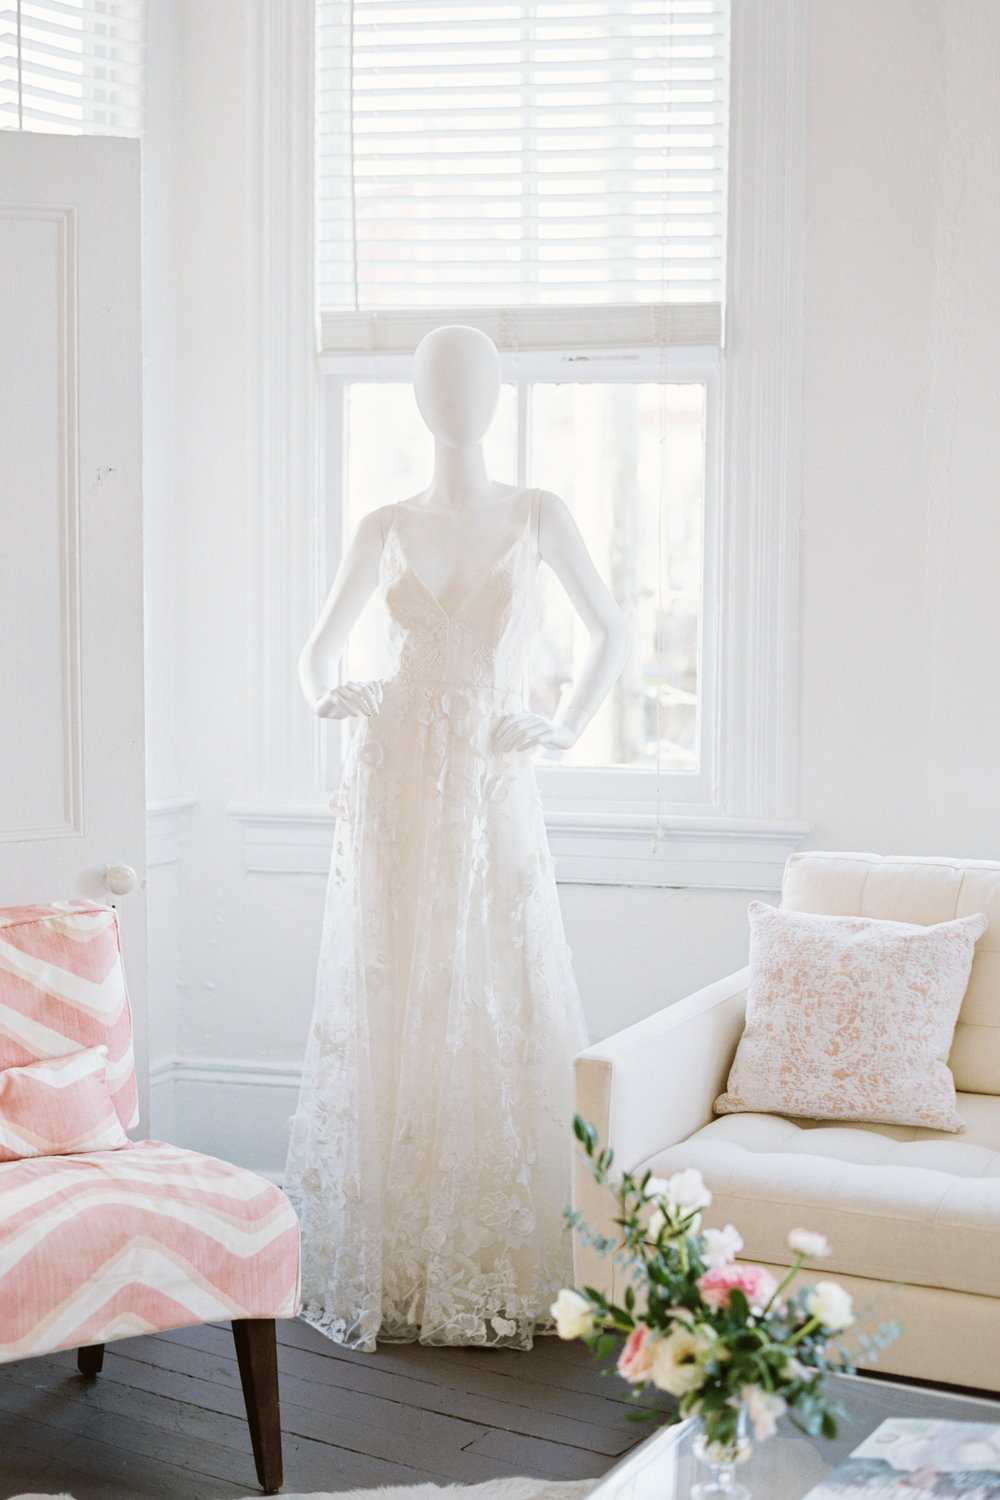 The White Dress Wedding Inspiration for the Modern Bride Book Signing by Beth Chapman at LulaKate in Charleston, South Carolina  //  photography by Emily Ann Hughes  //  on A Lowcountry Wedding Magazine & Blog